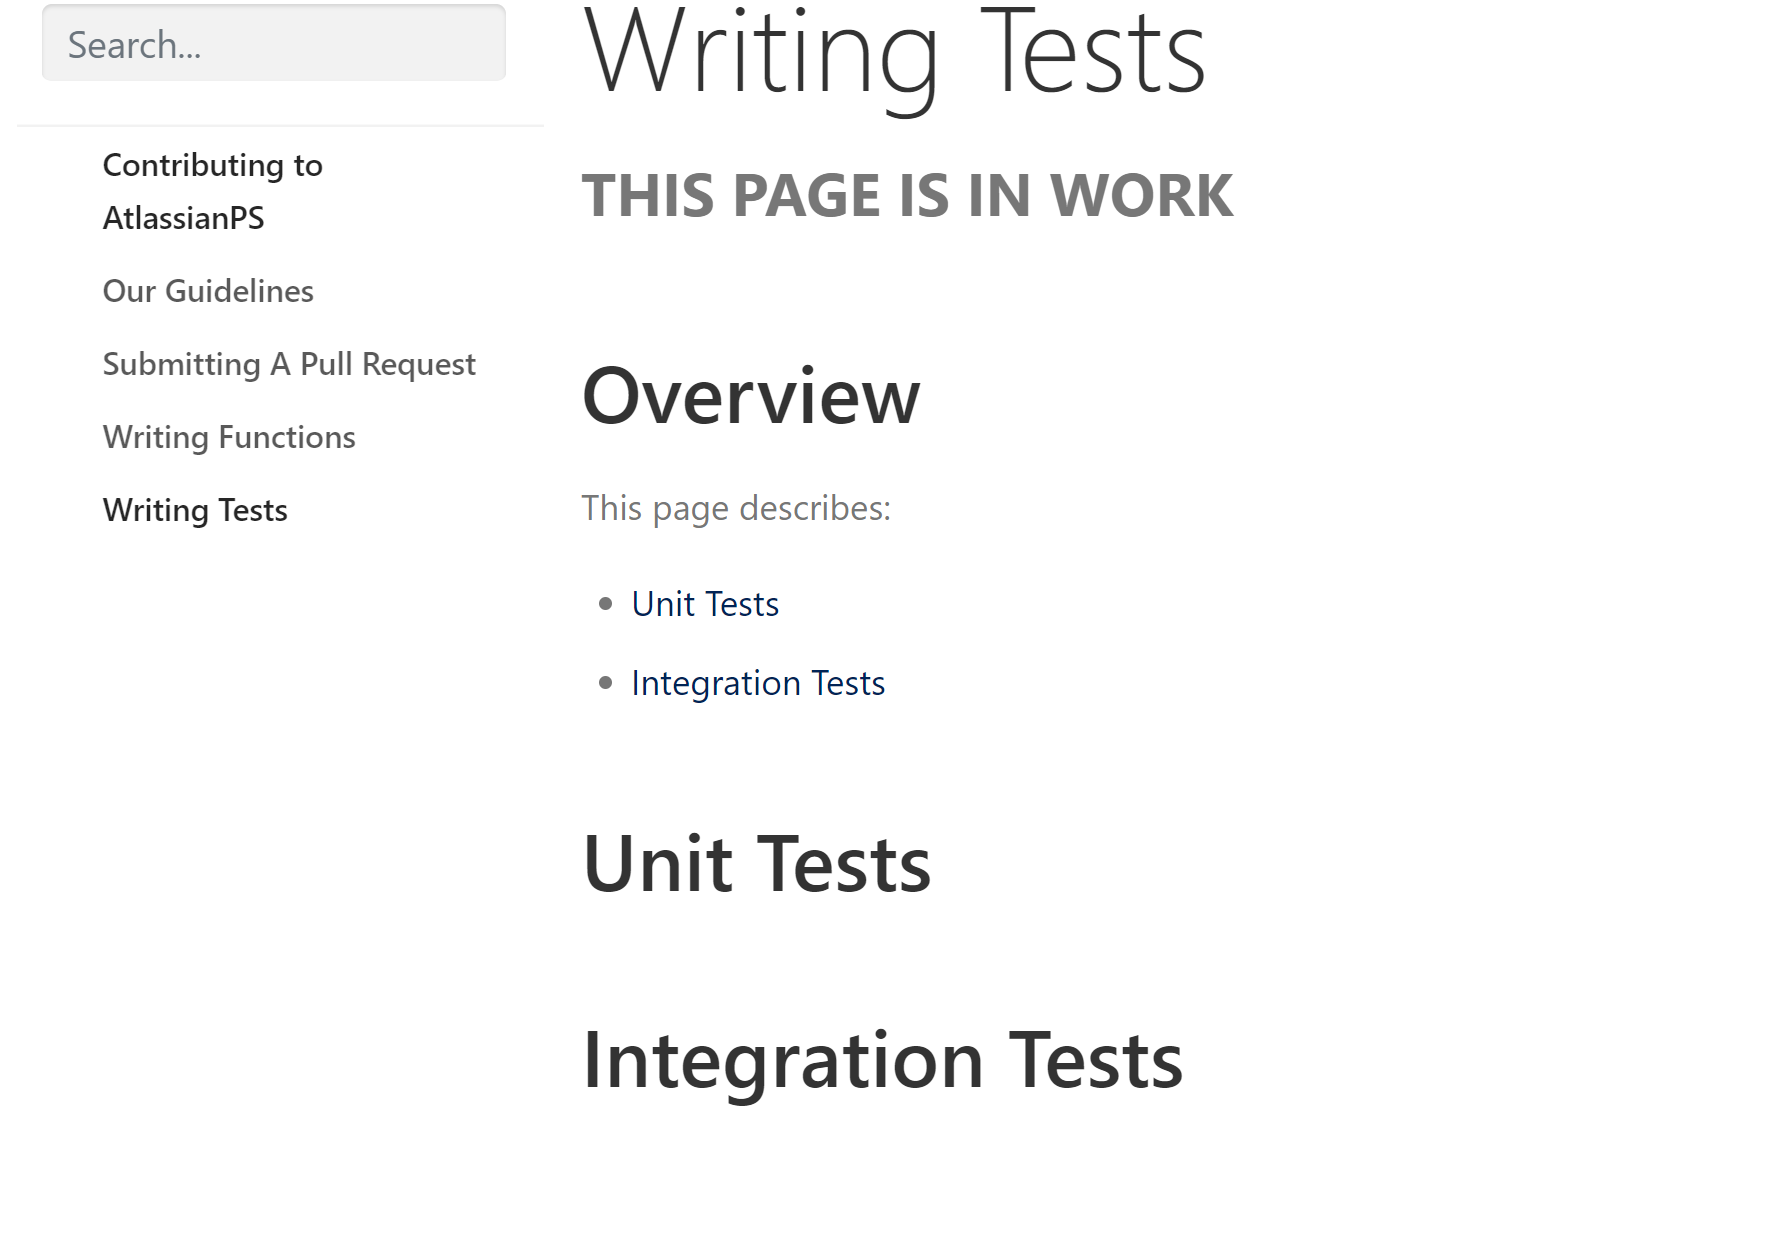 JIRA writing tests image